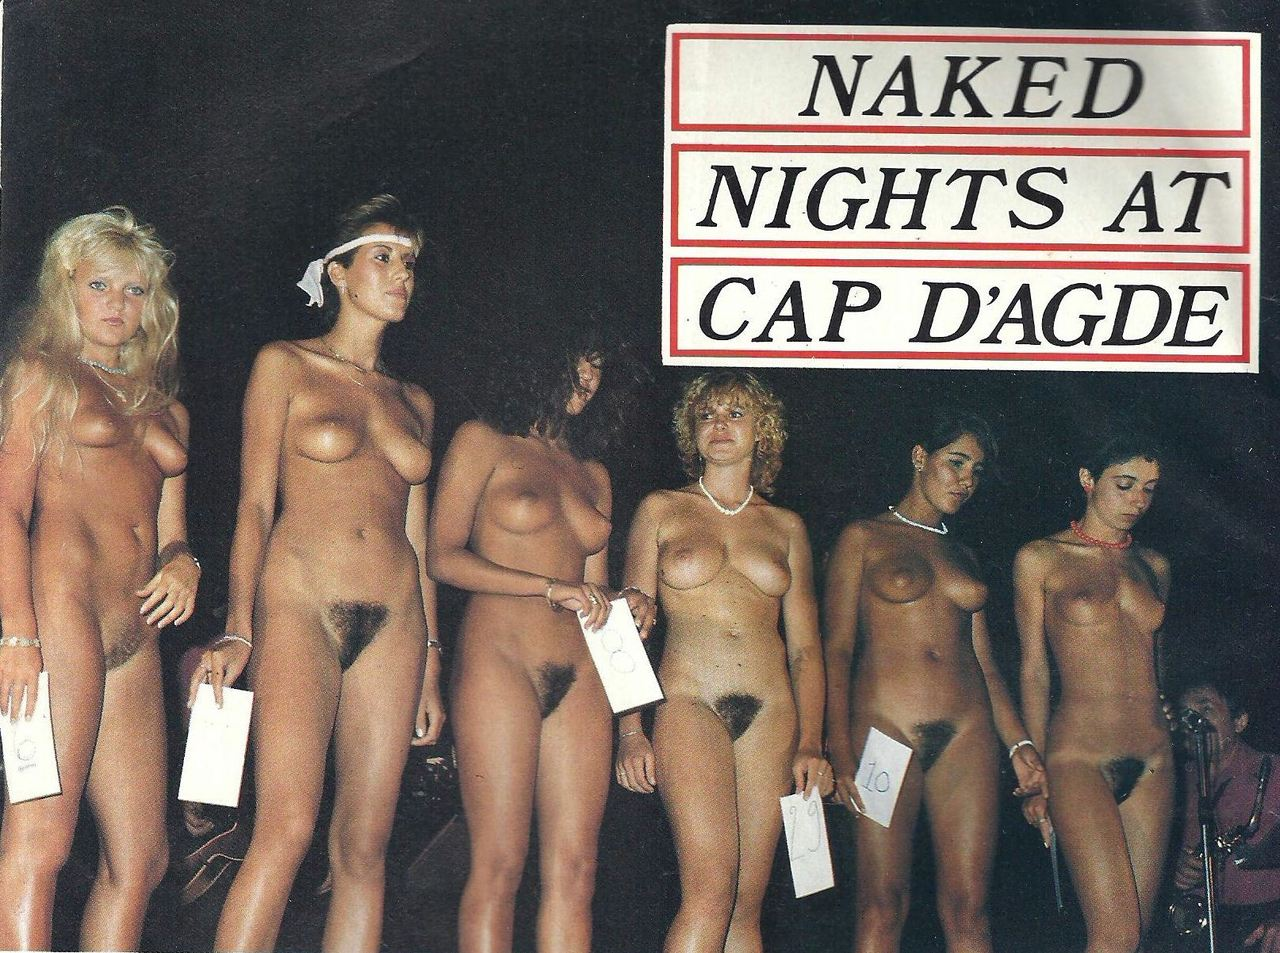 Best things happen when you are naked